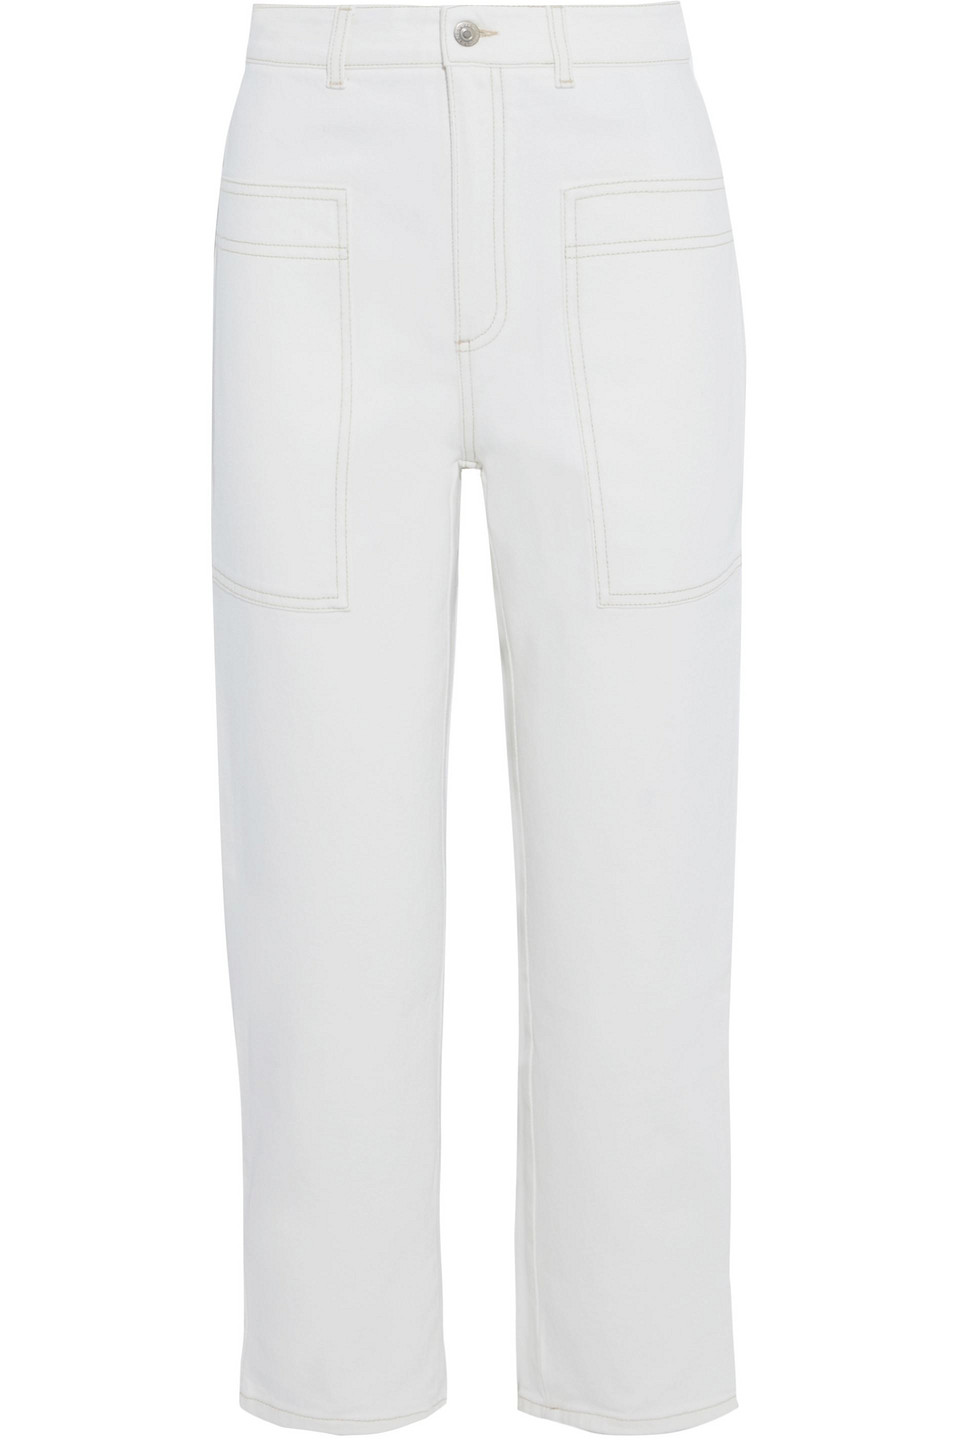 Stella McCartney | Stella Mccartney Woman Cropped High-rise Straight-leg Jeans White | Clouty